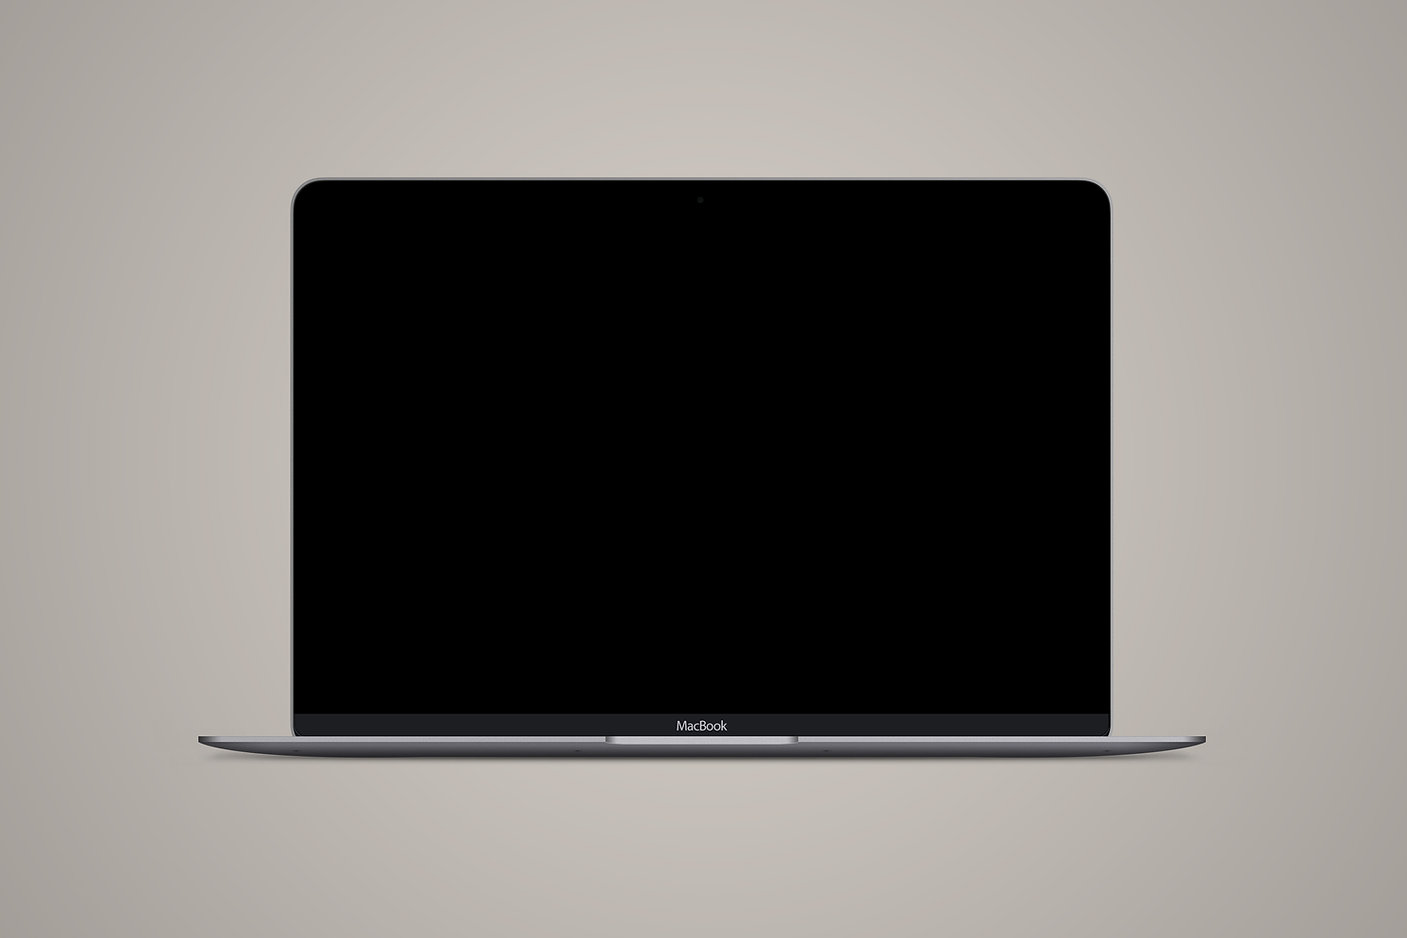 macbook-mockup.jpg